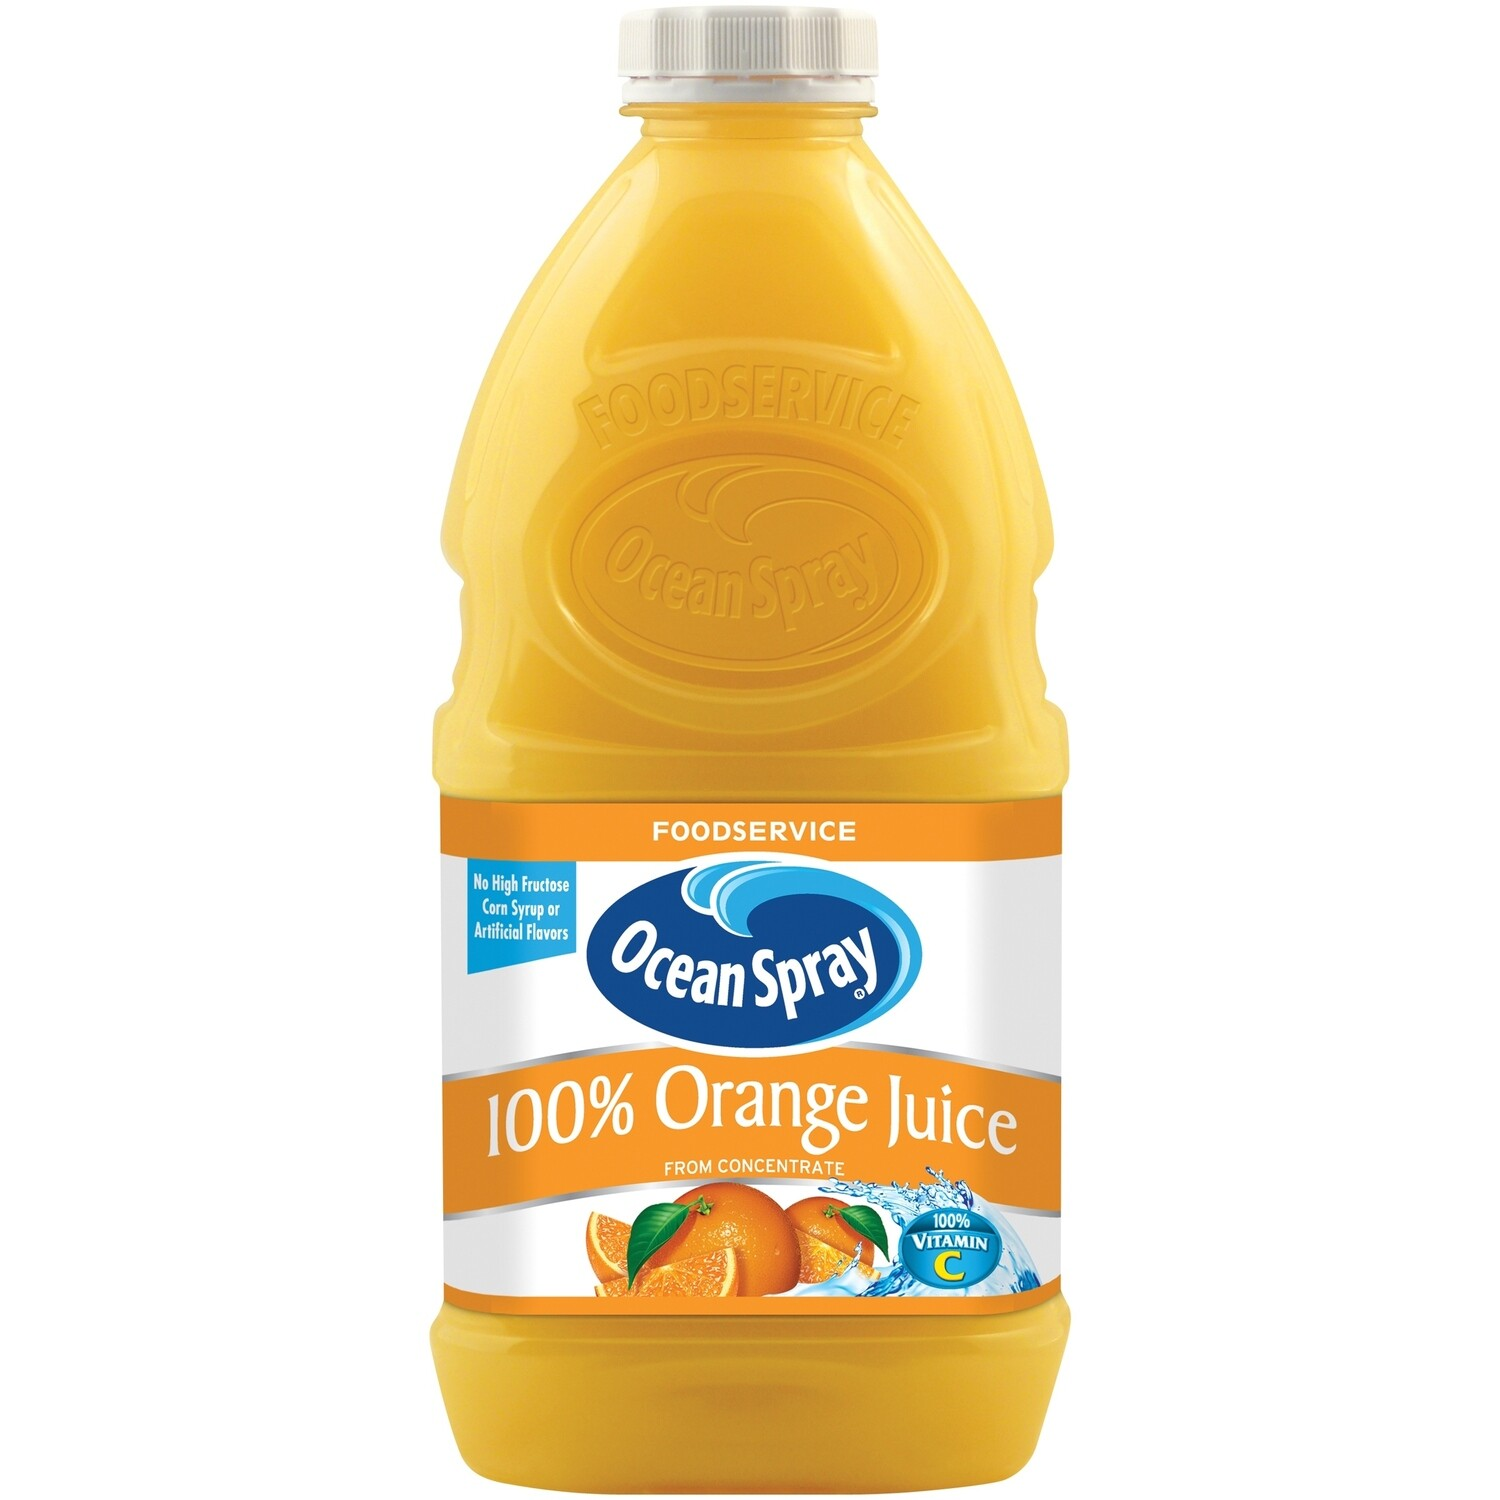 * Ocean Spray 100% Orange Juice 32 Ounces Bottle